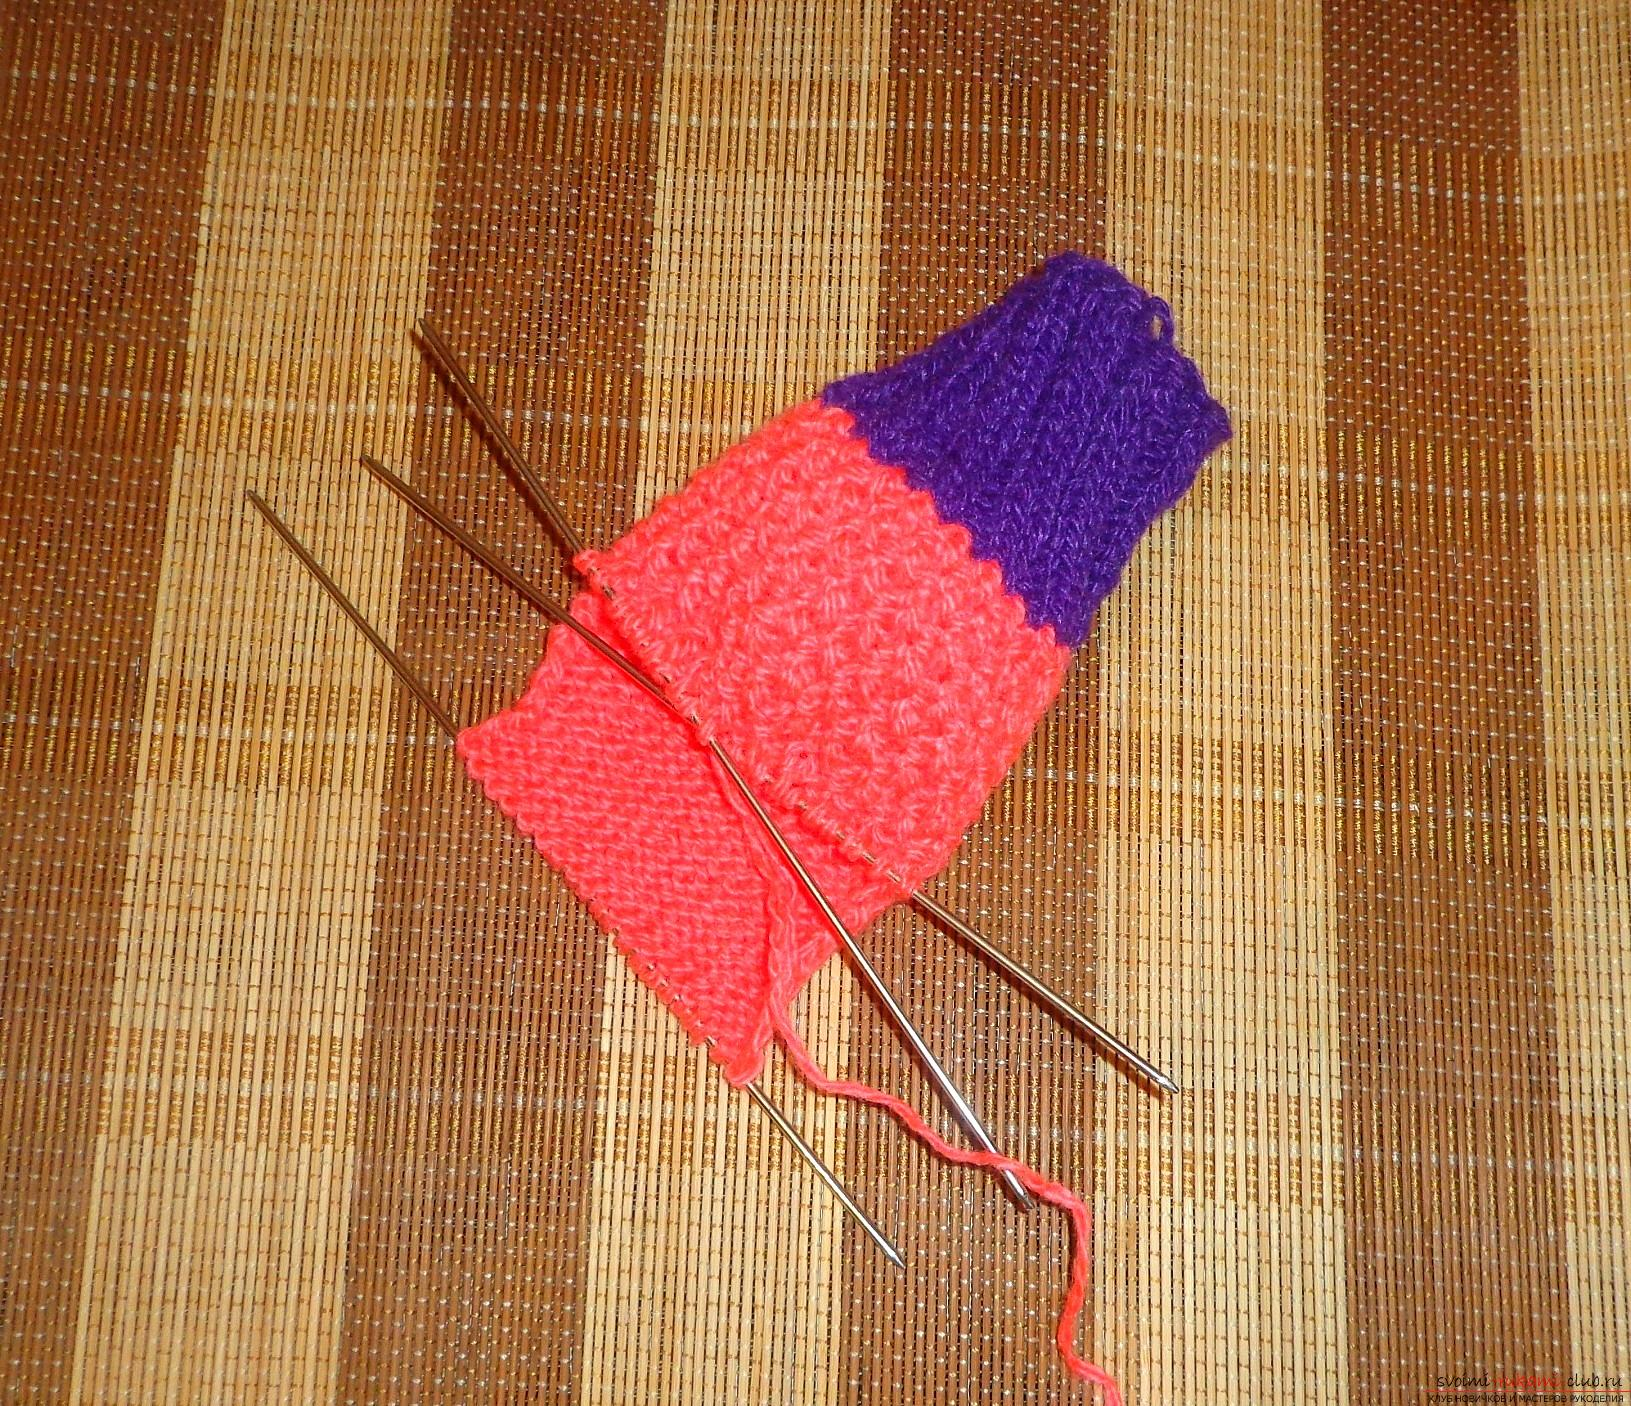 Photo to knitting lessons on knitting needles